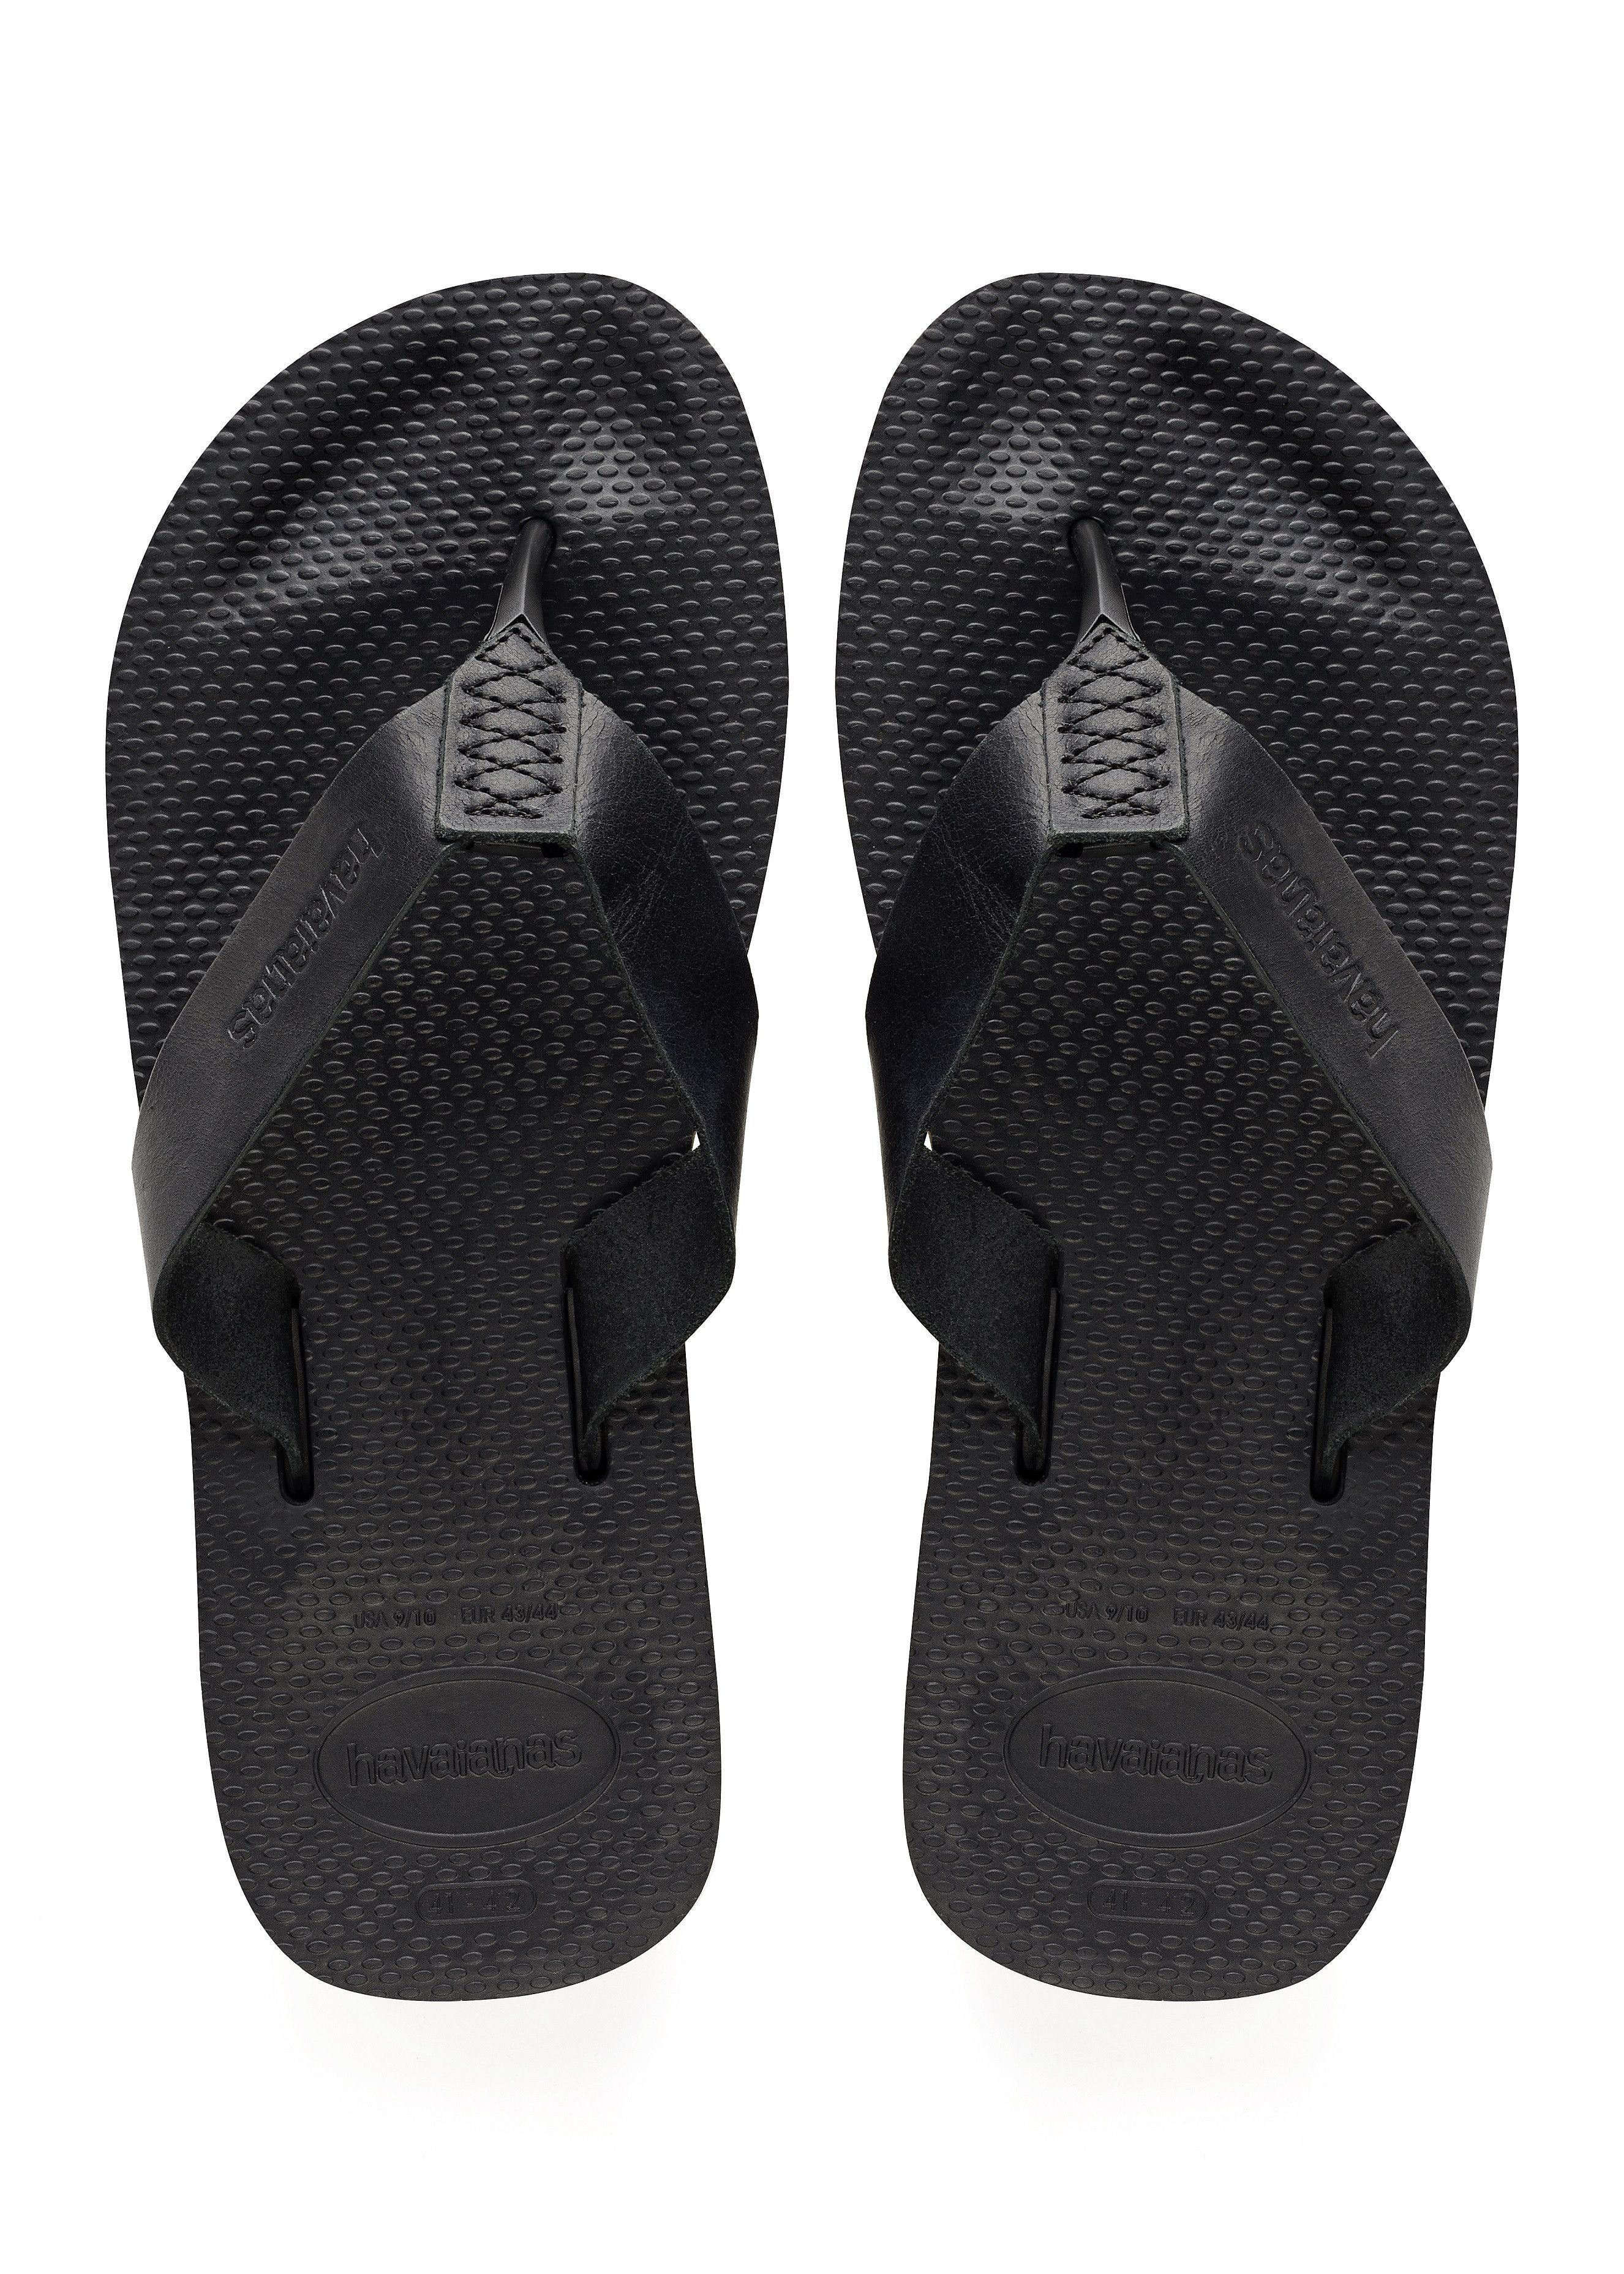 68acf541f8ac67 Havaianas Urban Special Sandal Black Price From  ₩51